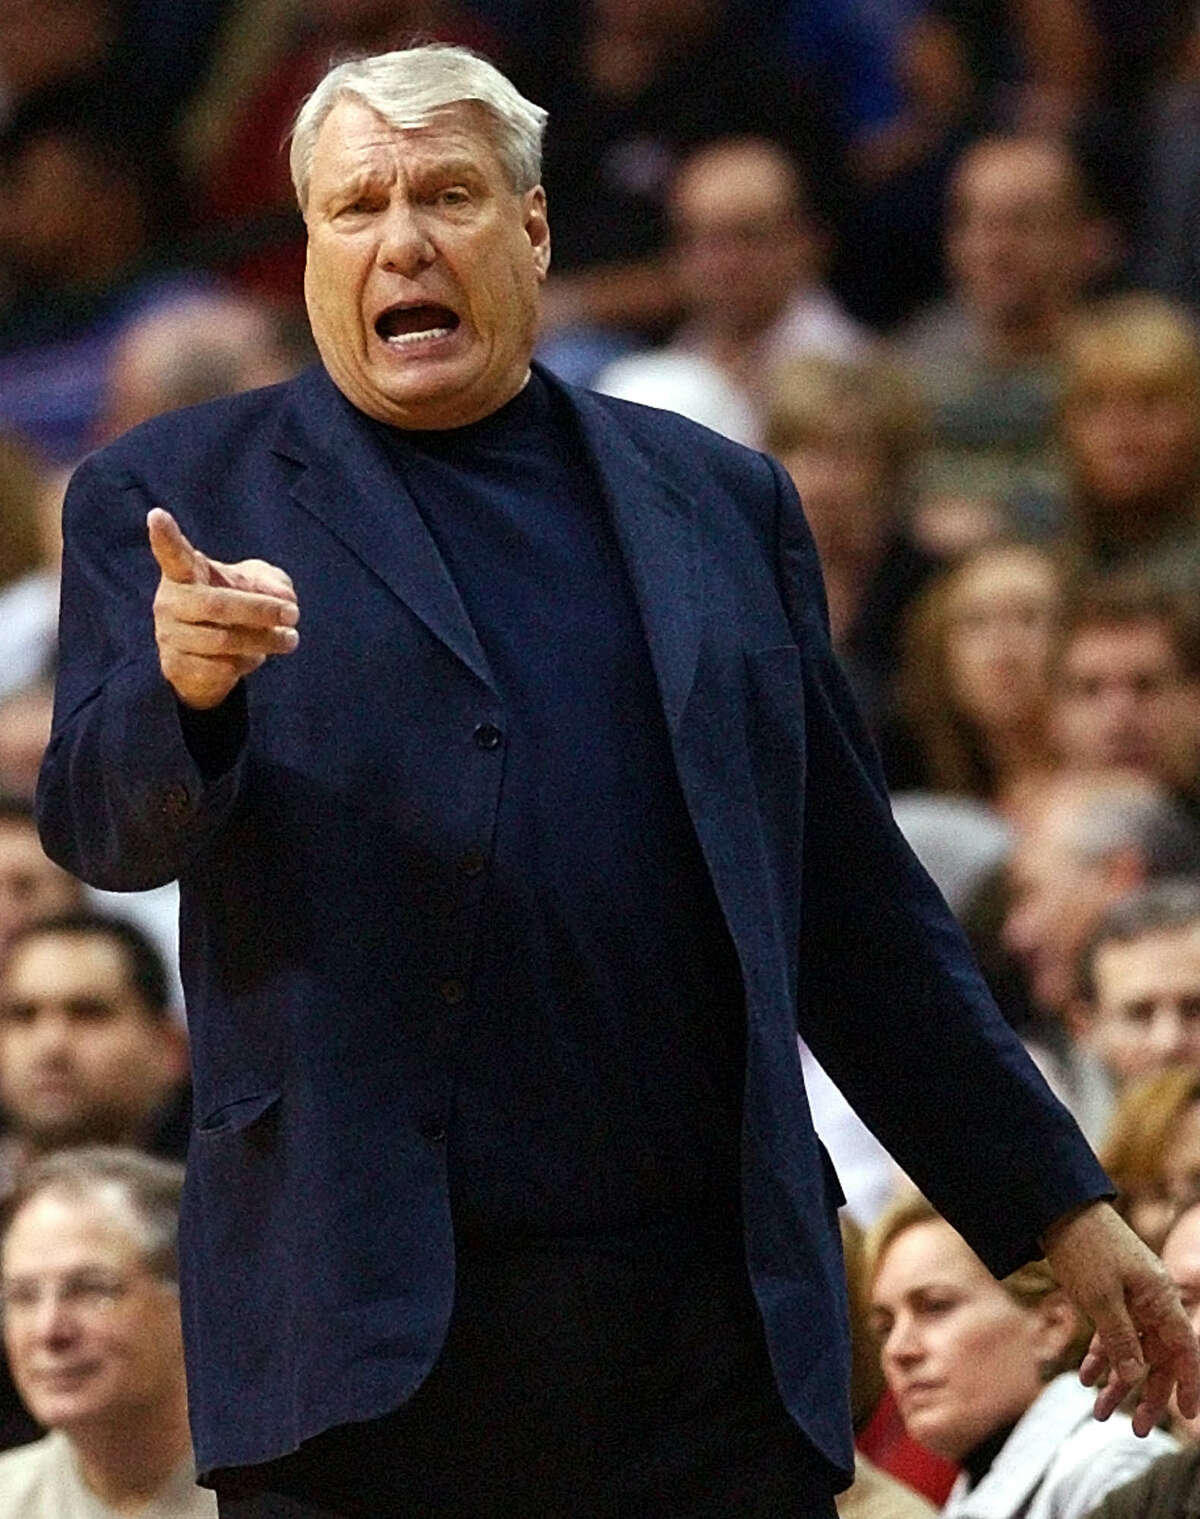 Dallas Mavericks head coach Don Nelson shouts directions during the first half against the Chicago Bulls in Dallas, in this Feb. 8, 2005 file photo. The Golden State Warriors will re-hire Nelson, the second-winningest coach in NBA history and the last coach to lead the downtrodden Warriors to the playoffs after coach Mike Montgomery was dismissed by the Warriors on Tuesday, Aug. 29, 2006. (AP Photo/LM Otero)